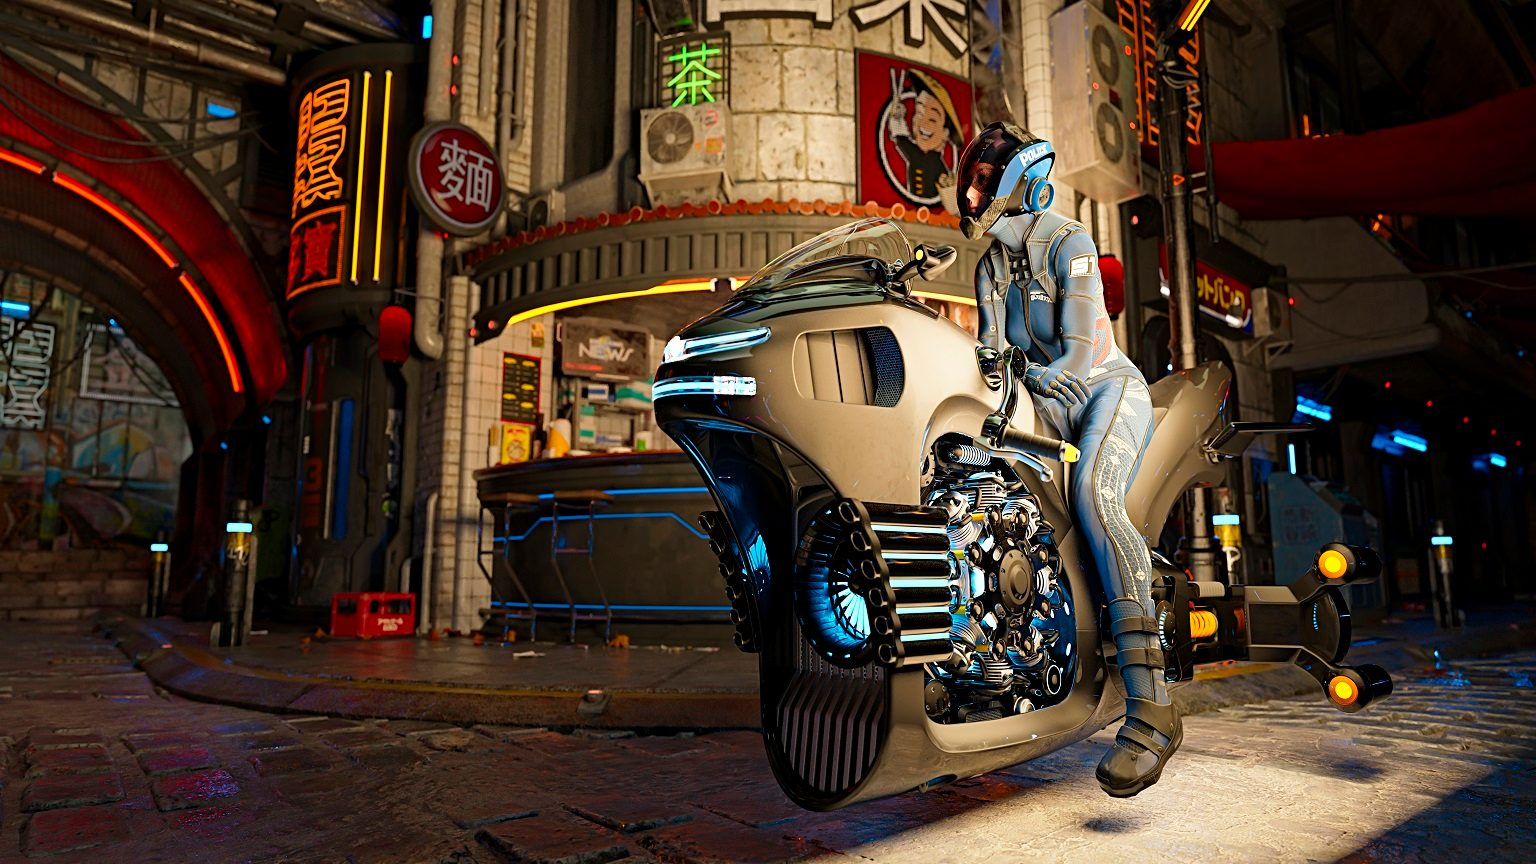 Cyberpunk girl in helmet on a motorcycle in asian futuristic city